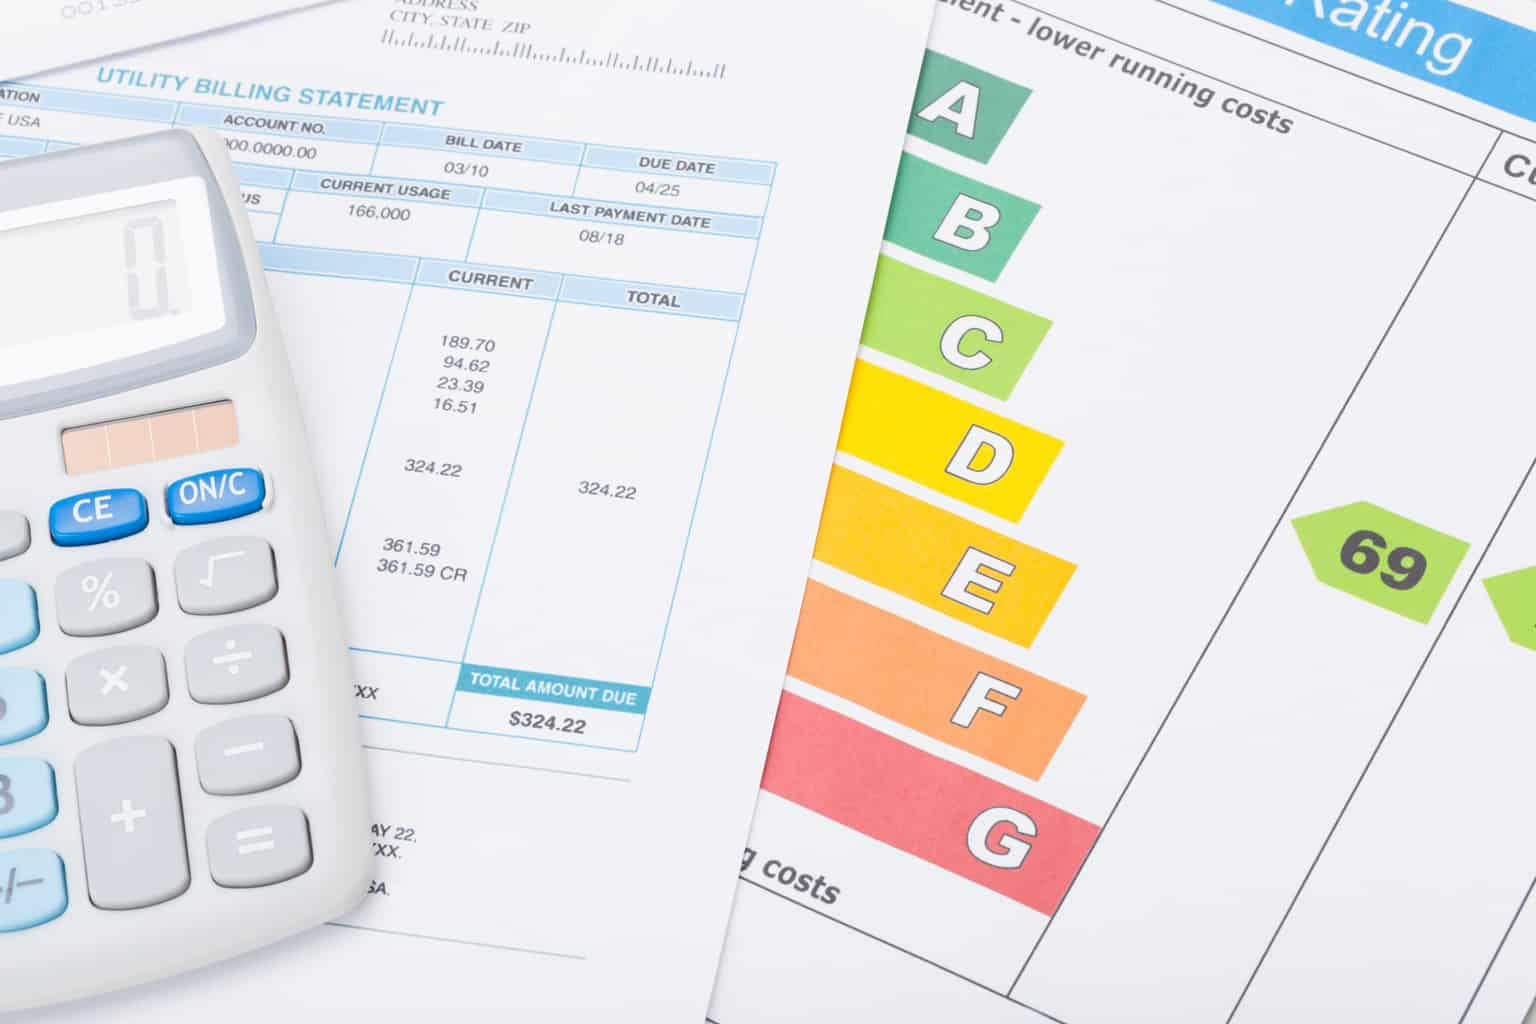 The Ultimate Guide To Lowering Your Winter Power Costs